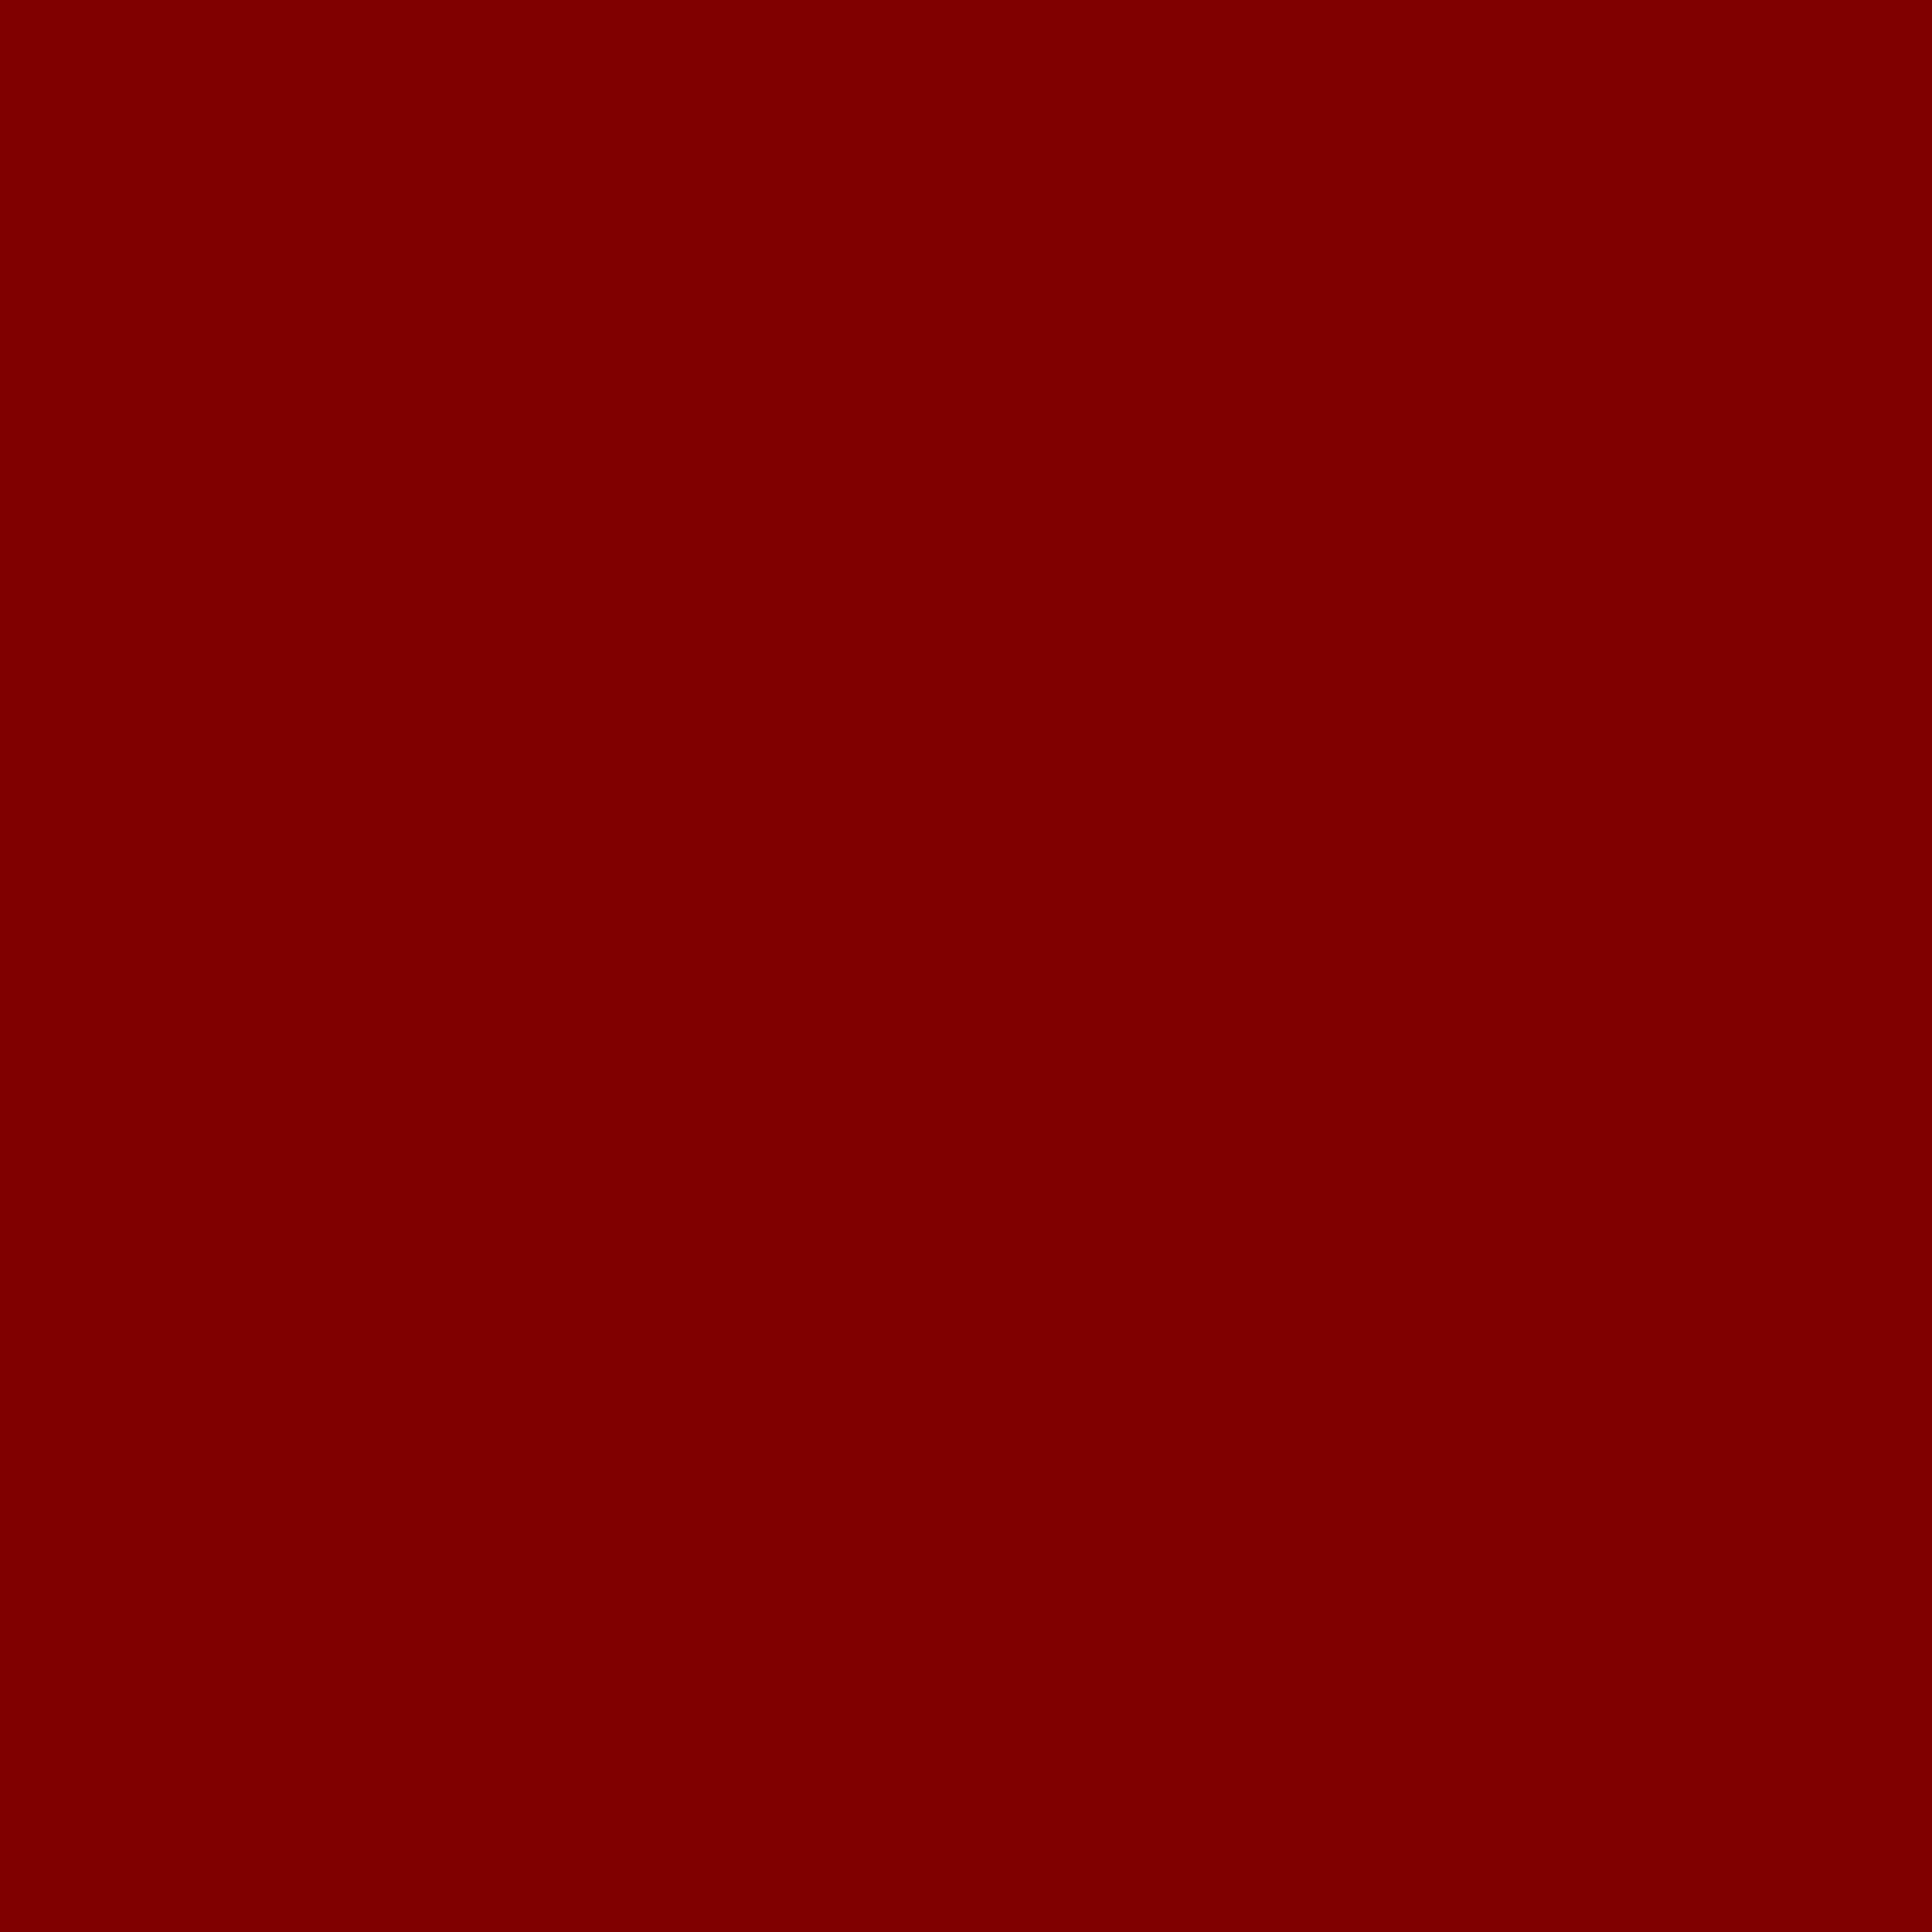 2048x2048 Maroon Web Solid Color Background